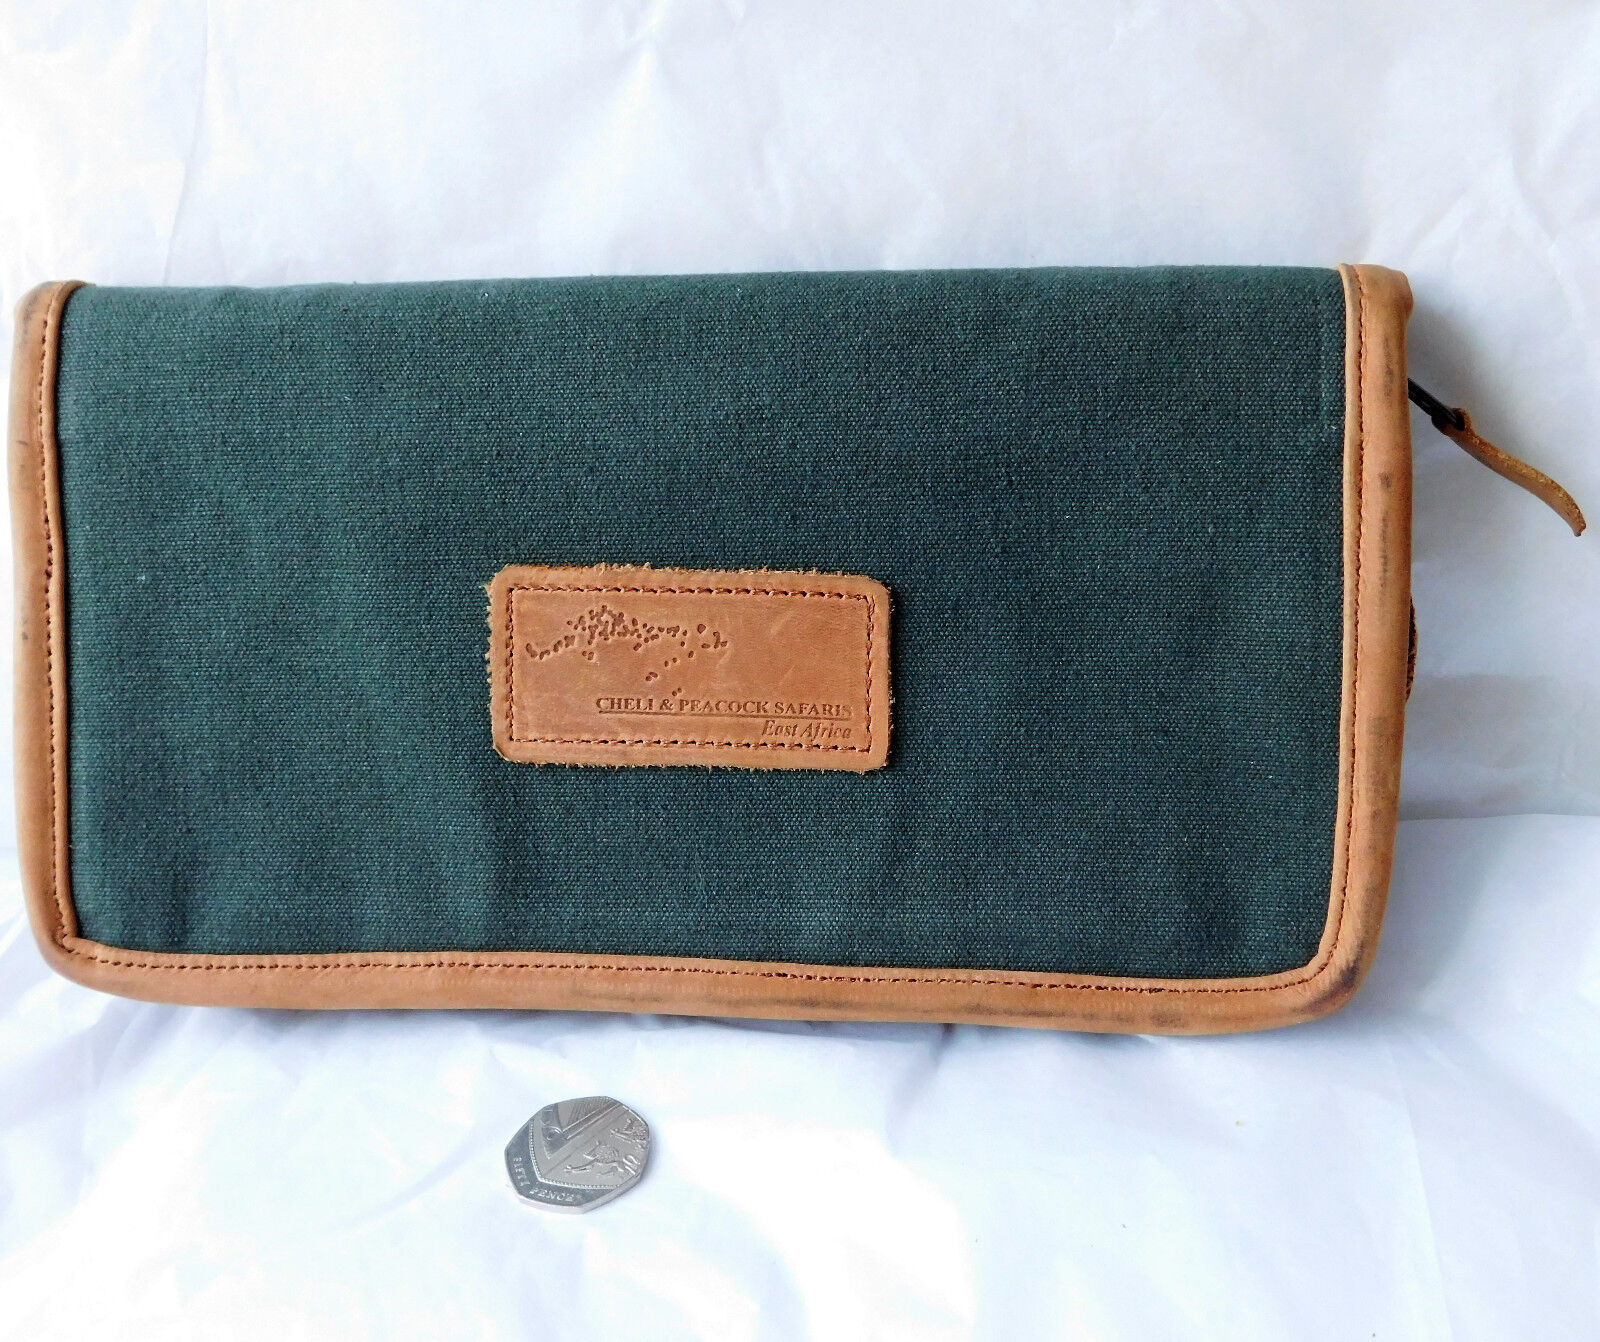 Vintage travel wallet canvas suede document holder Cheli Peacock Safari Africa